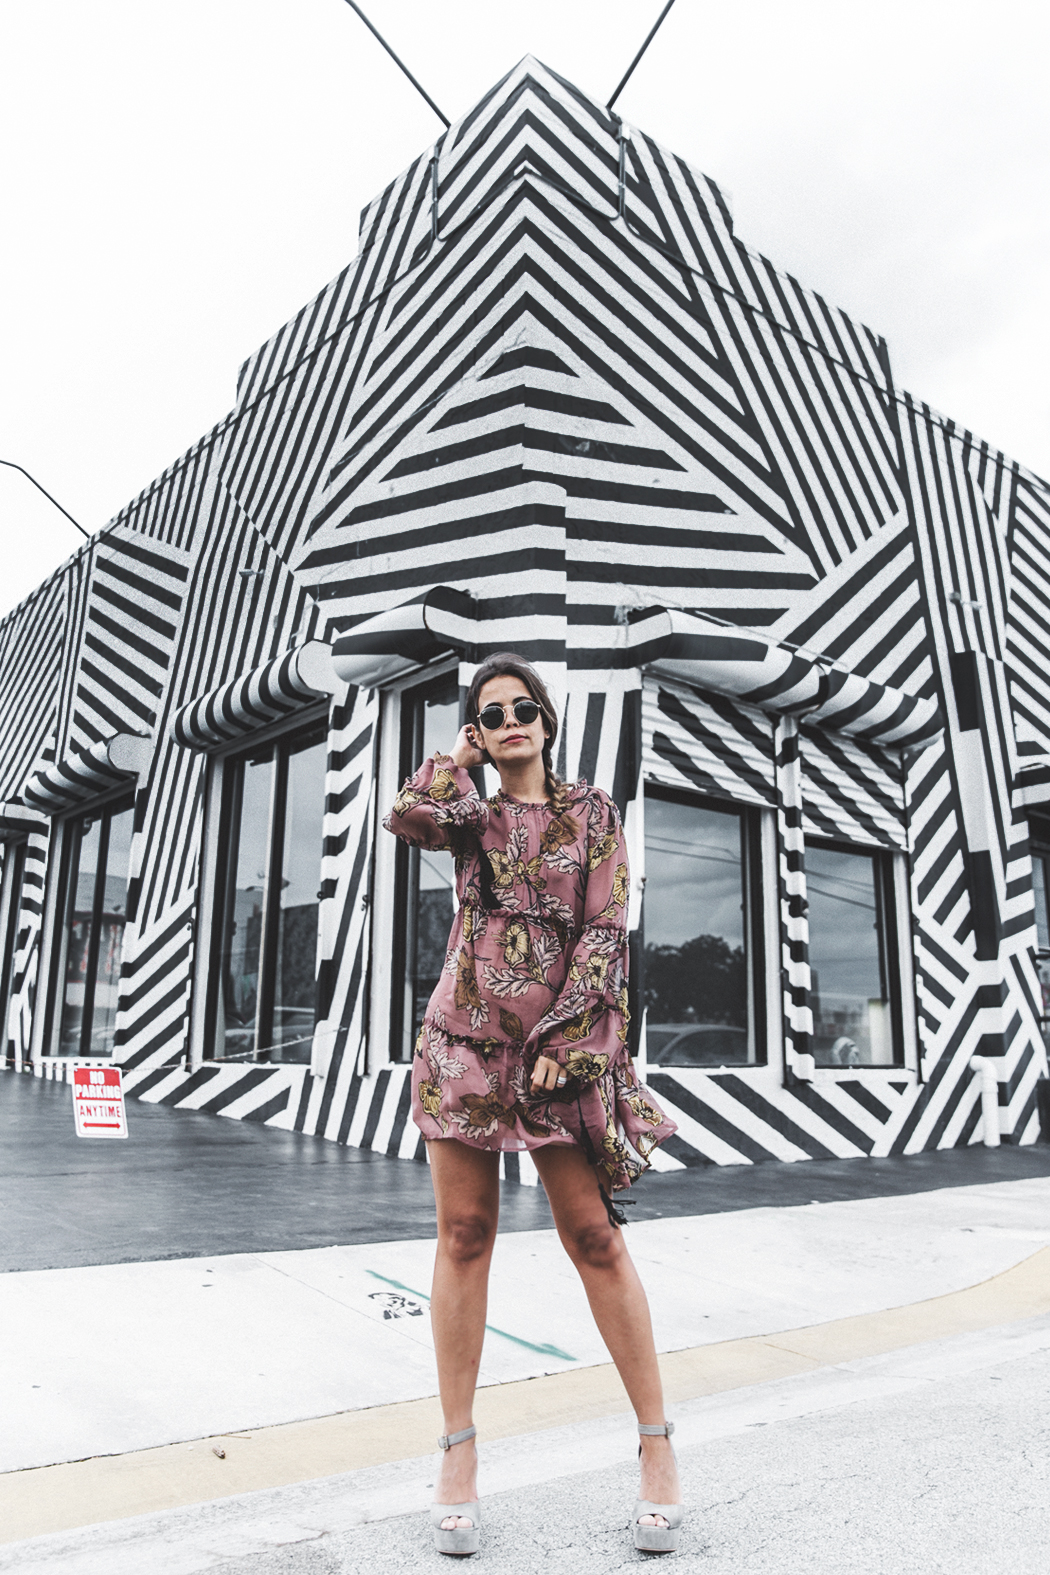 Wynwood-Miami-Black_And_White_Stripes_Wall-For_Love_And_Lemons_Dress-Floral_Print-Wedges-Outfit-32